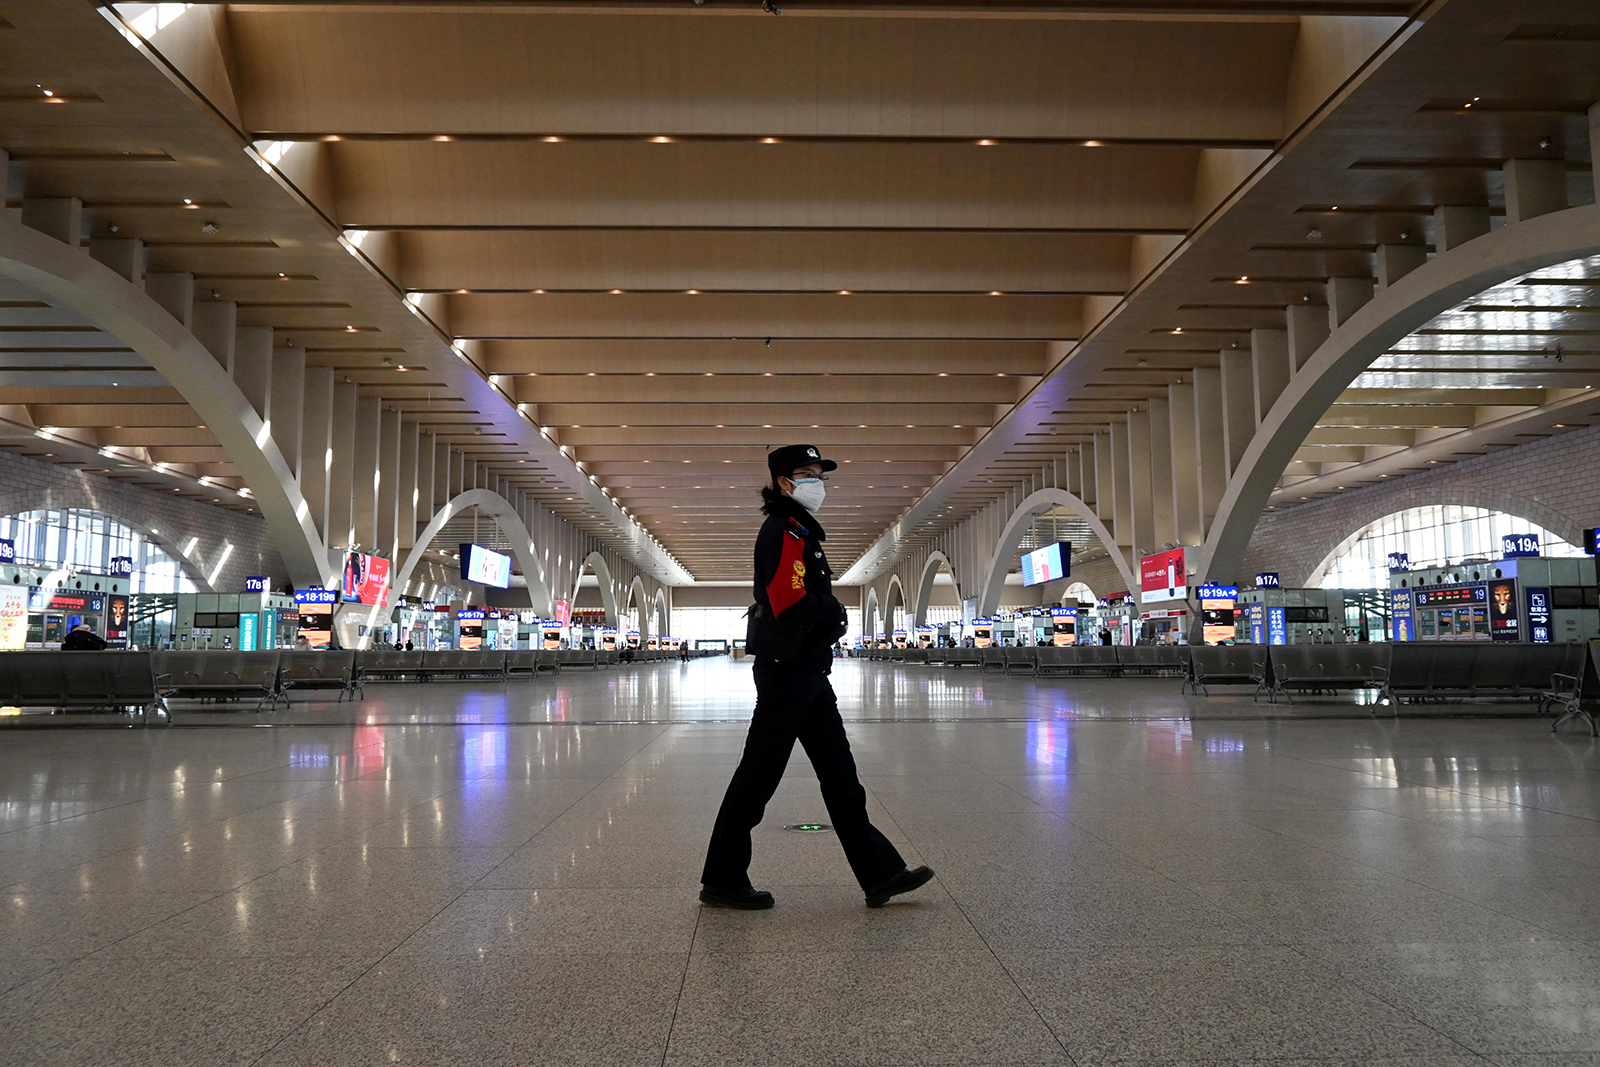 A police patrol is seen walking in an empty railway station in Shijiazhaung, China, on January 7.